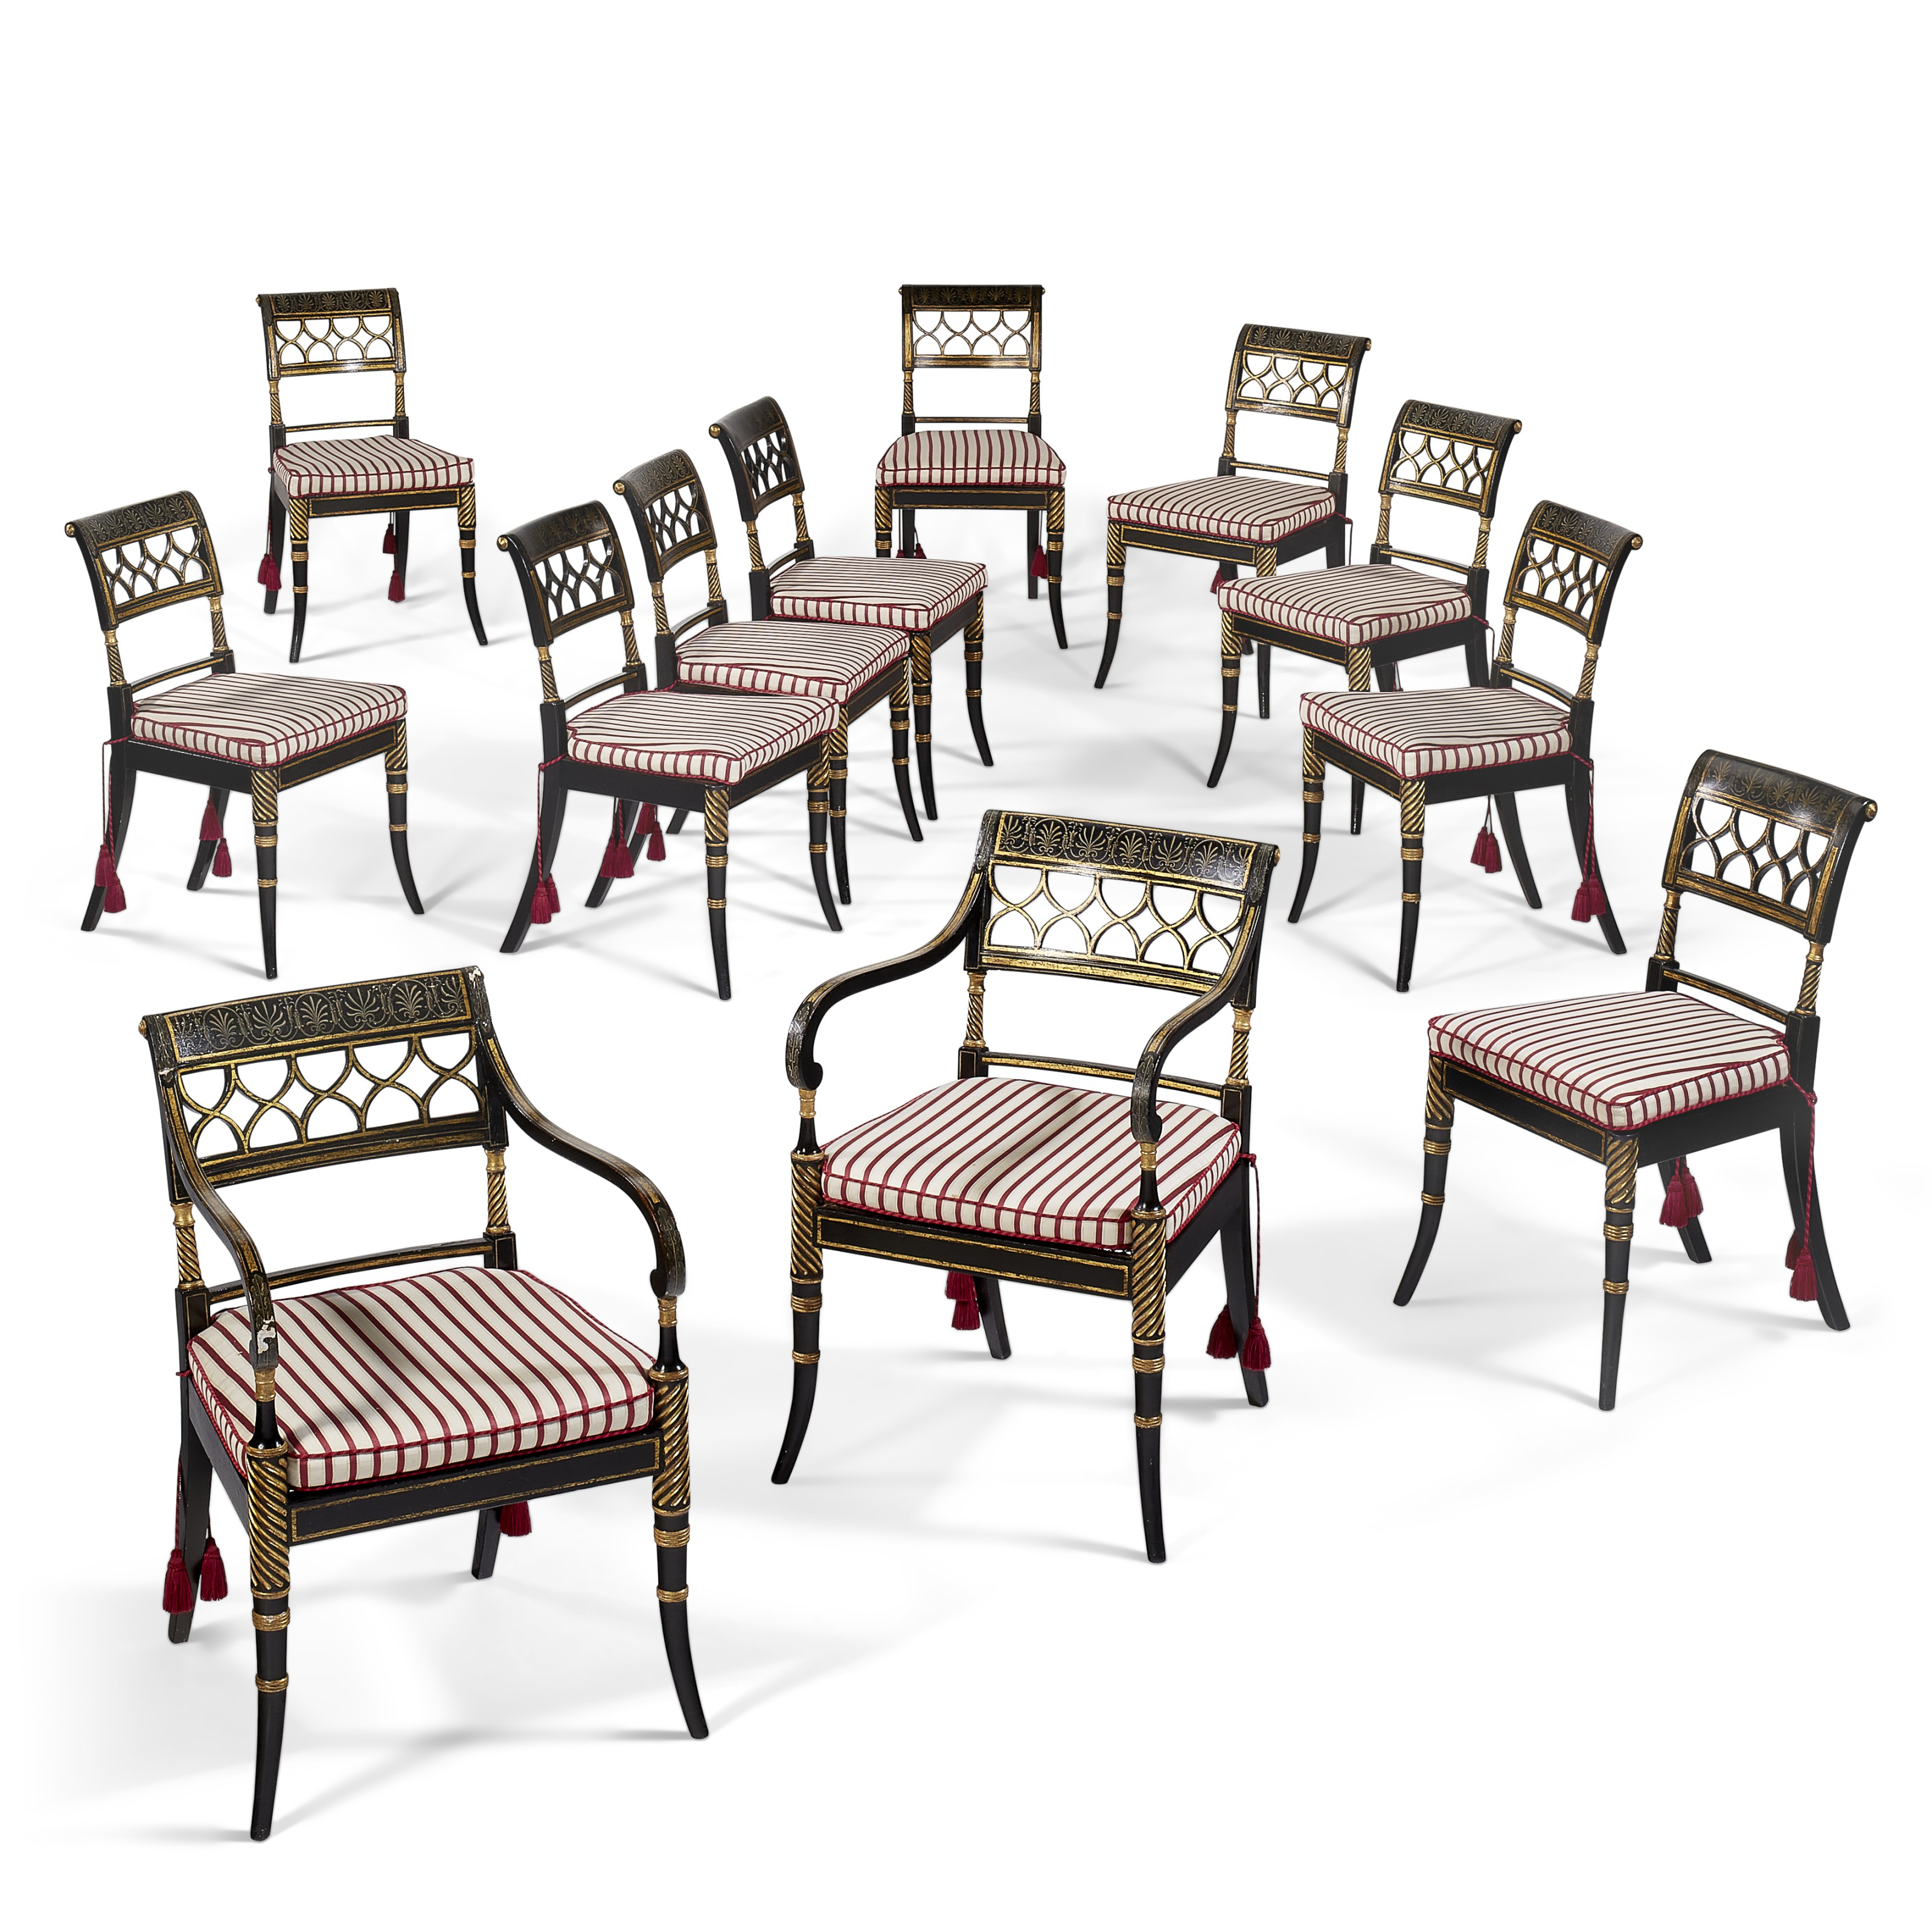 A set of twelve Regency ebonized and parcel-gilt dining chairs, eight c. 1815, four side chairs of a later date. The armchairs 33  in (84  cm) high. The side chairs 32¾  in (83  cm) high. Estimate $6,000-10,000. Offered in The Collector English & European Furniture, Ceramics, Silver & Works of Art on 5-19 October 2021 at Christie's Online